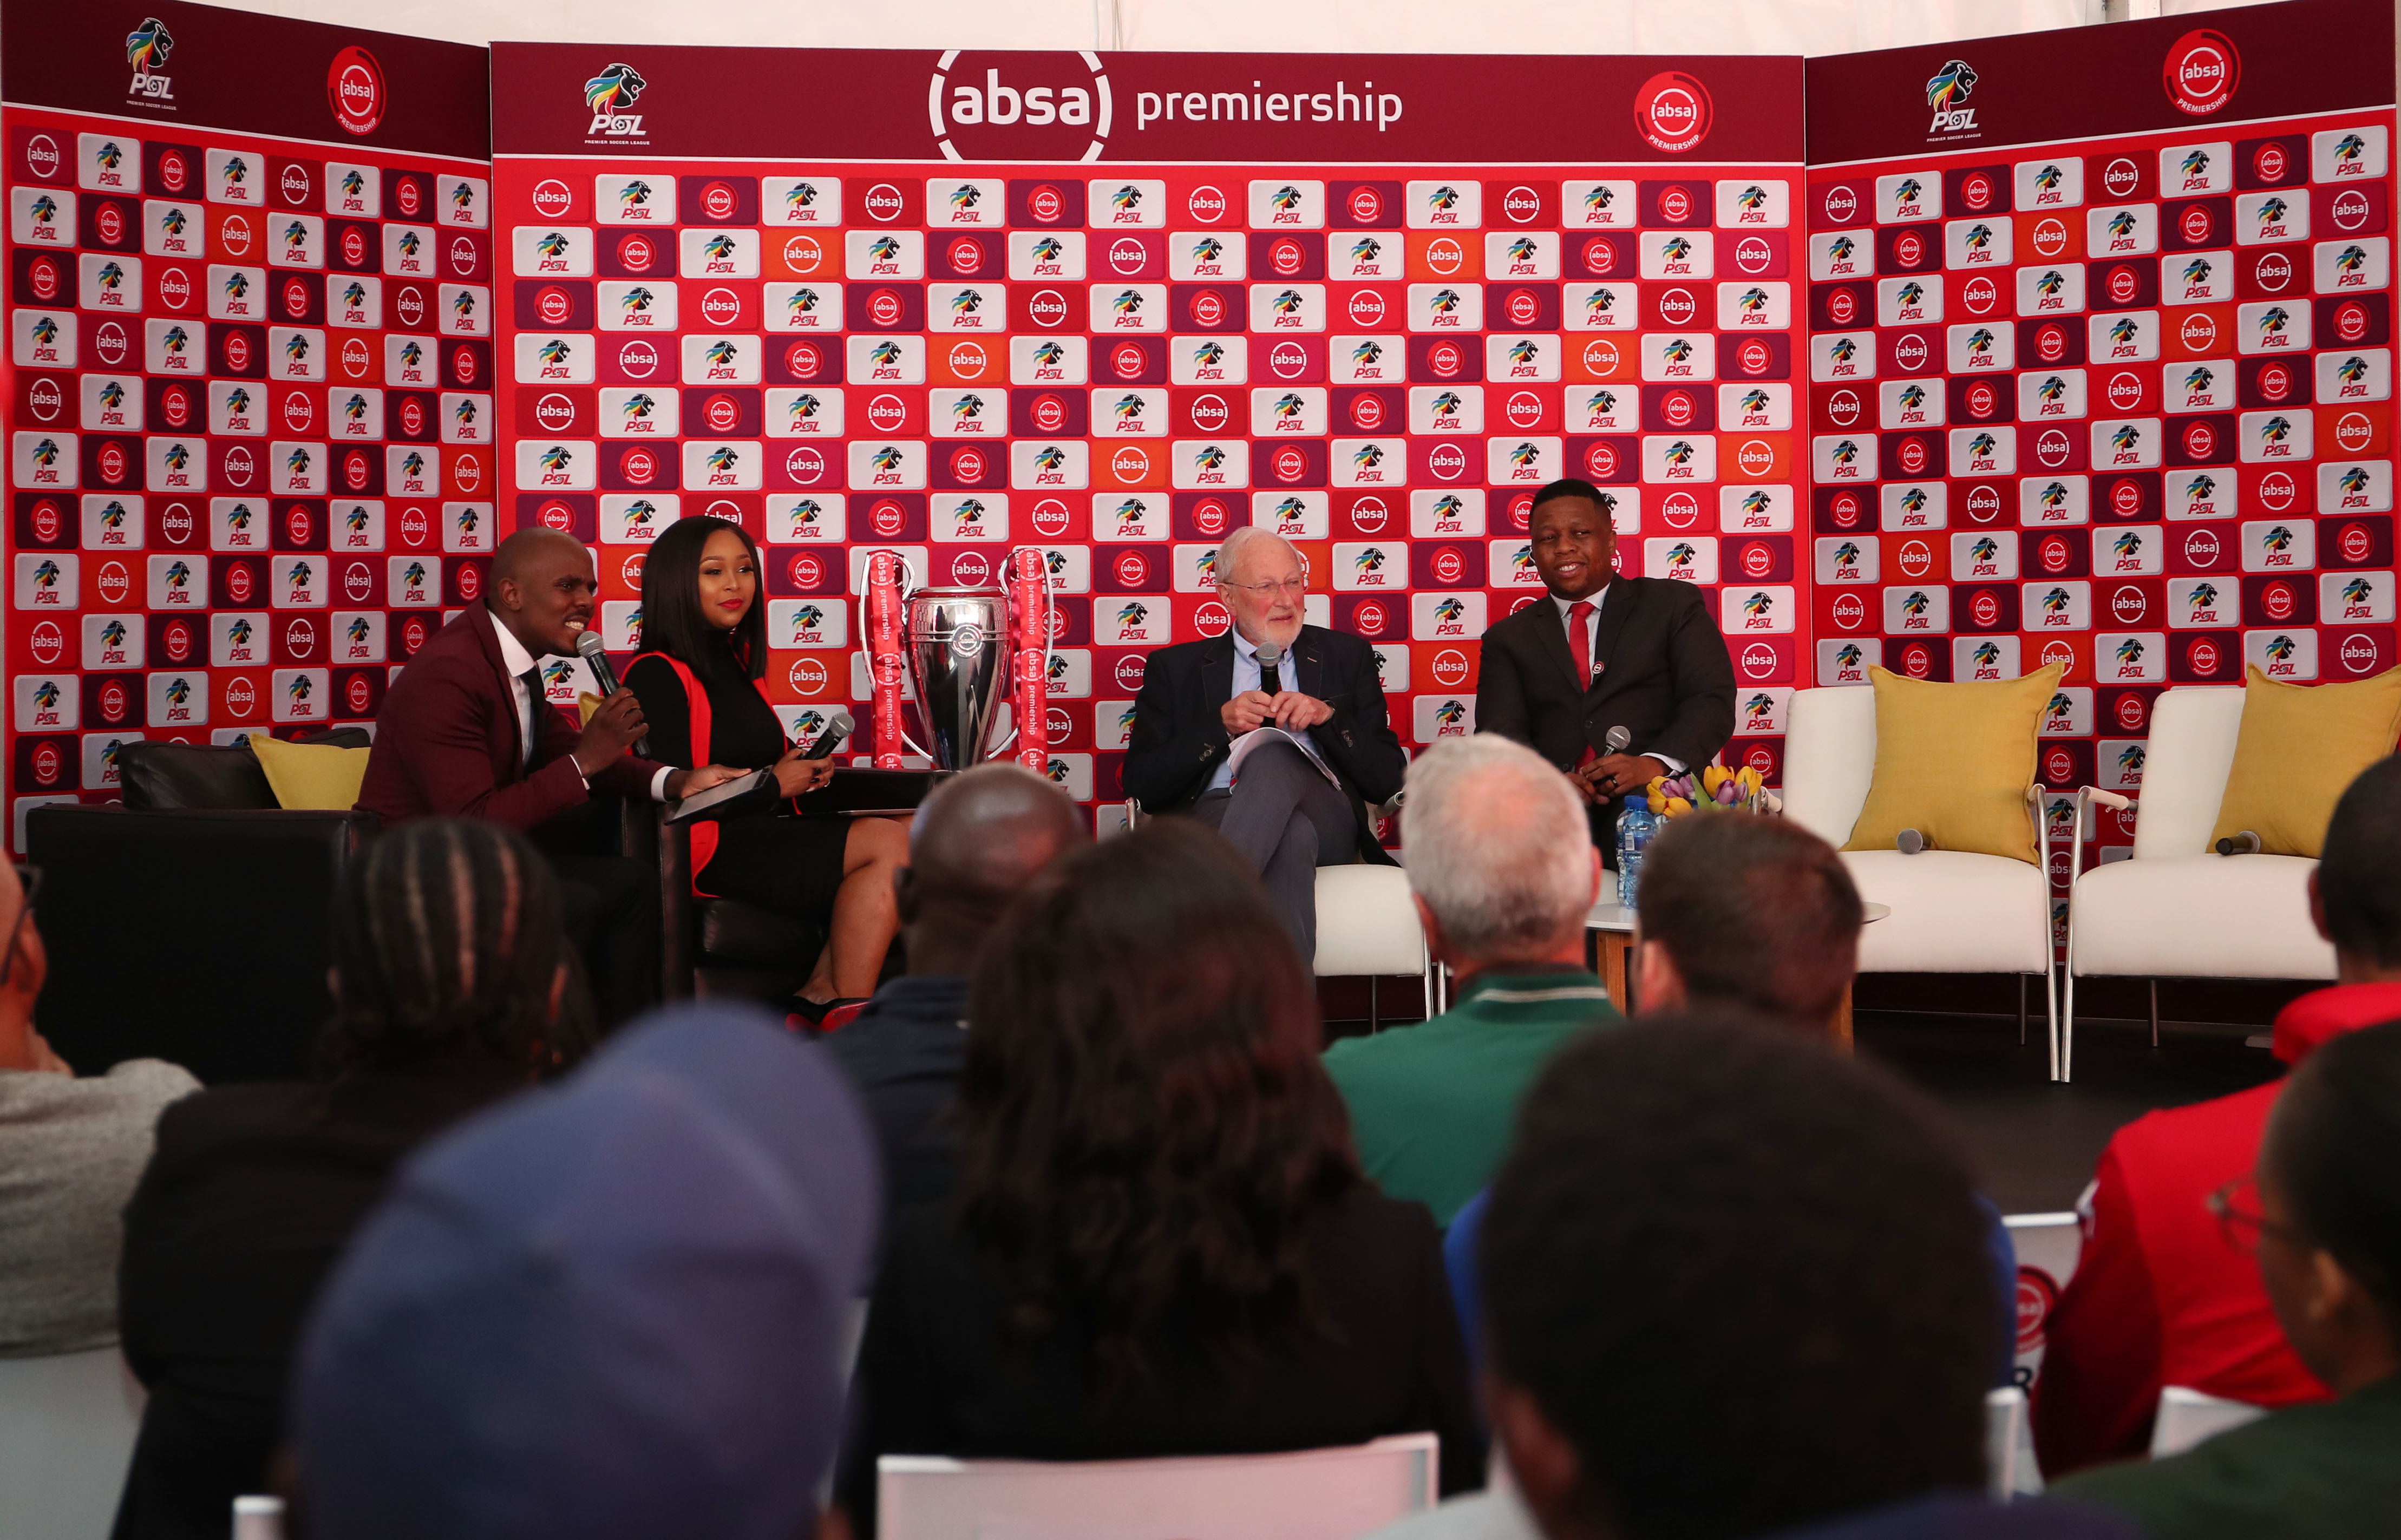 Absa Premiership 2019/20 Launch - Absa Contact Centre - Auckland Park